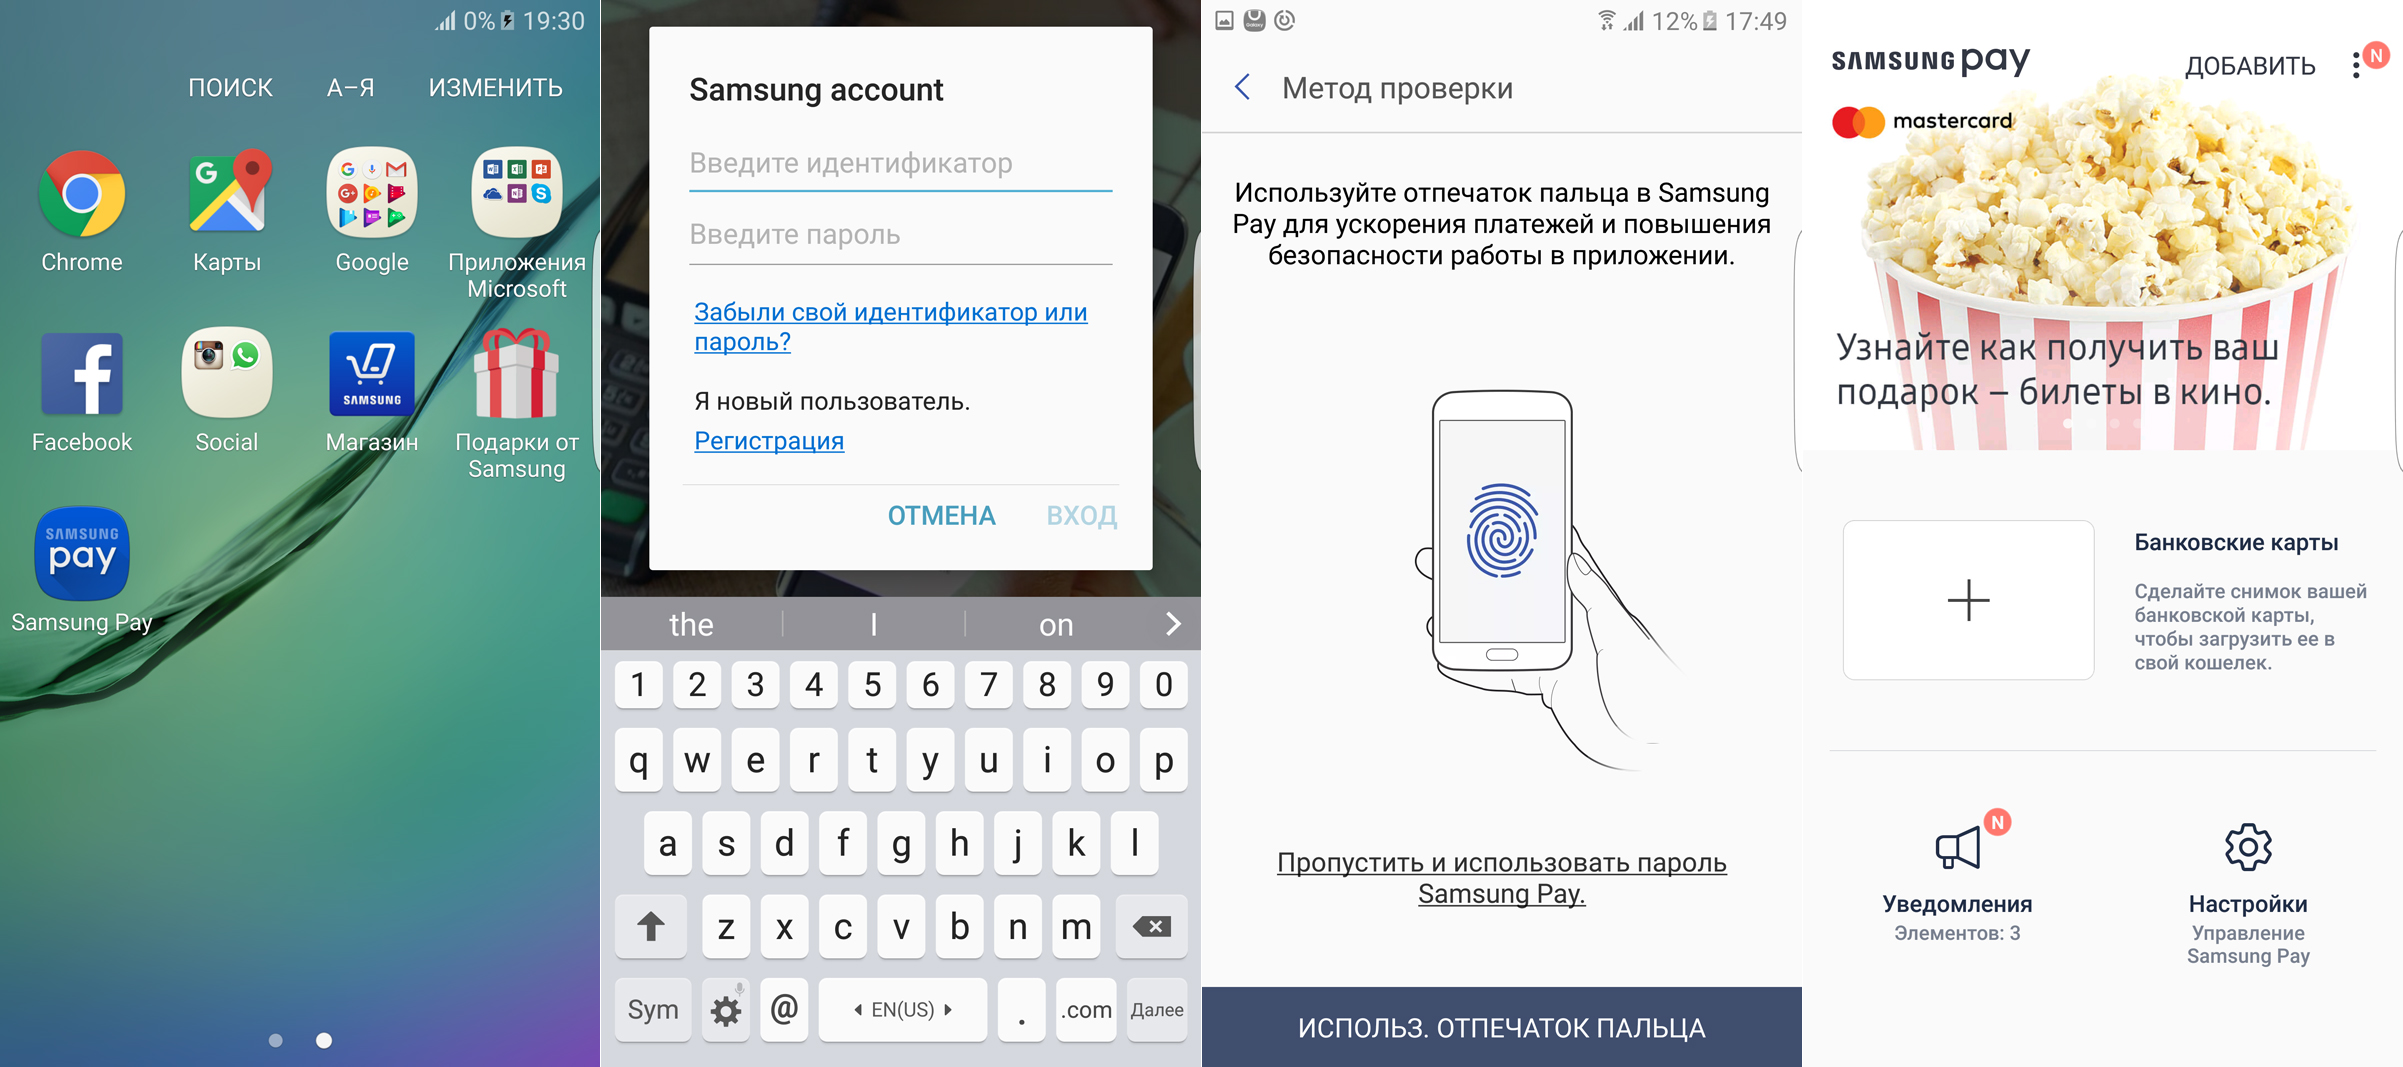 Пример начальной настройки Samsung Pay